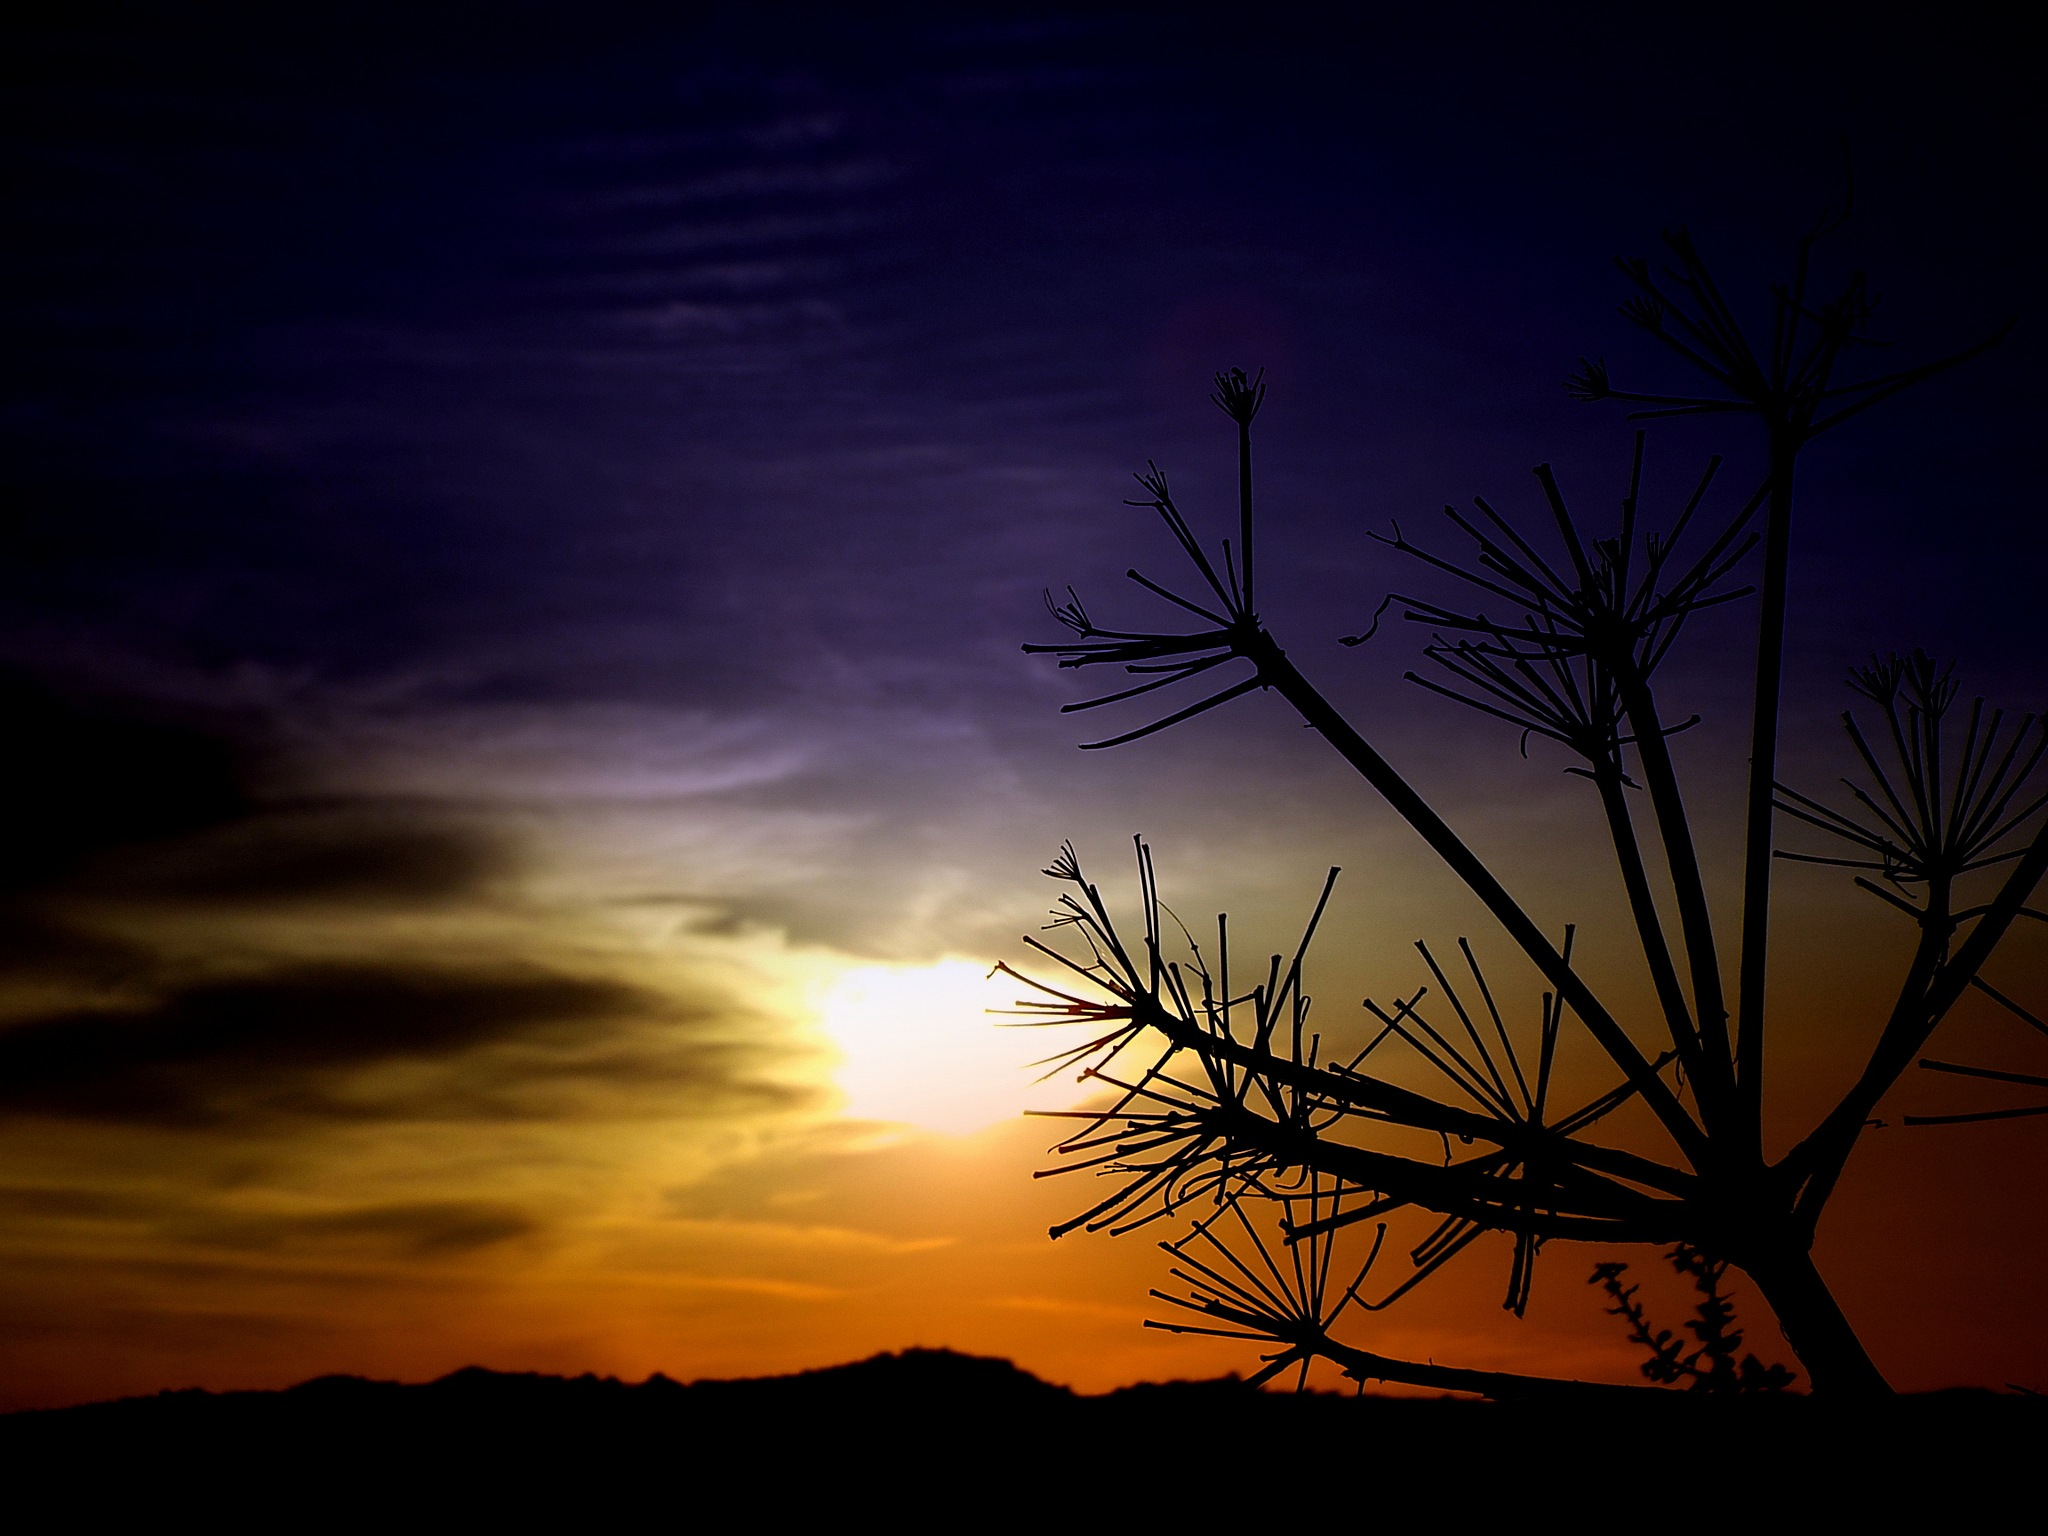 SILHOUETTES AT SUNSET 2 by Akin Saner